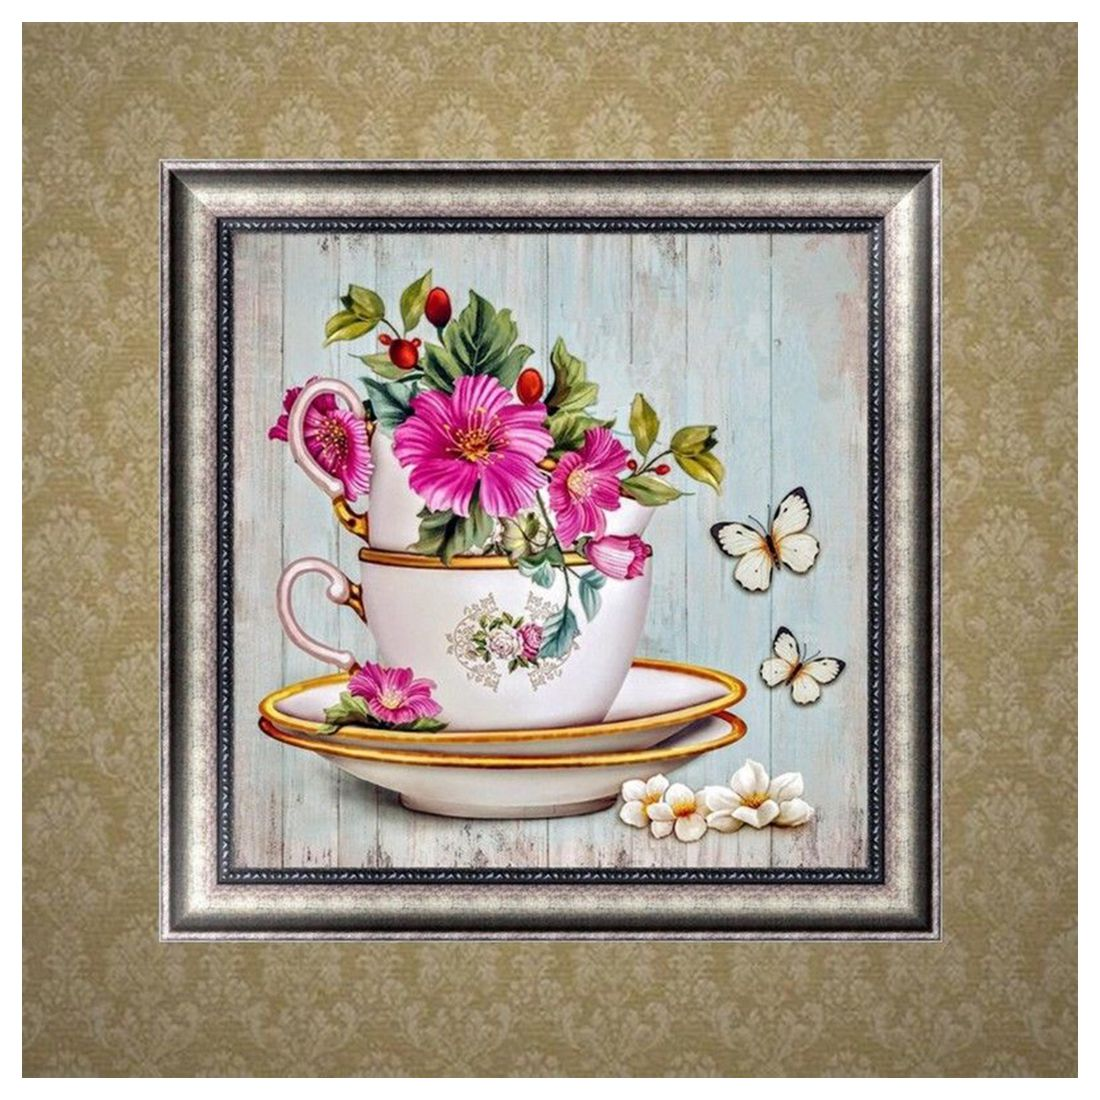 Diy 5d Diamond Embroidery Painting Flower Cross Stitch Home Decor Kit Craft S1f4 Ebay